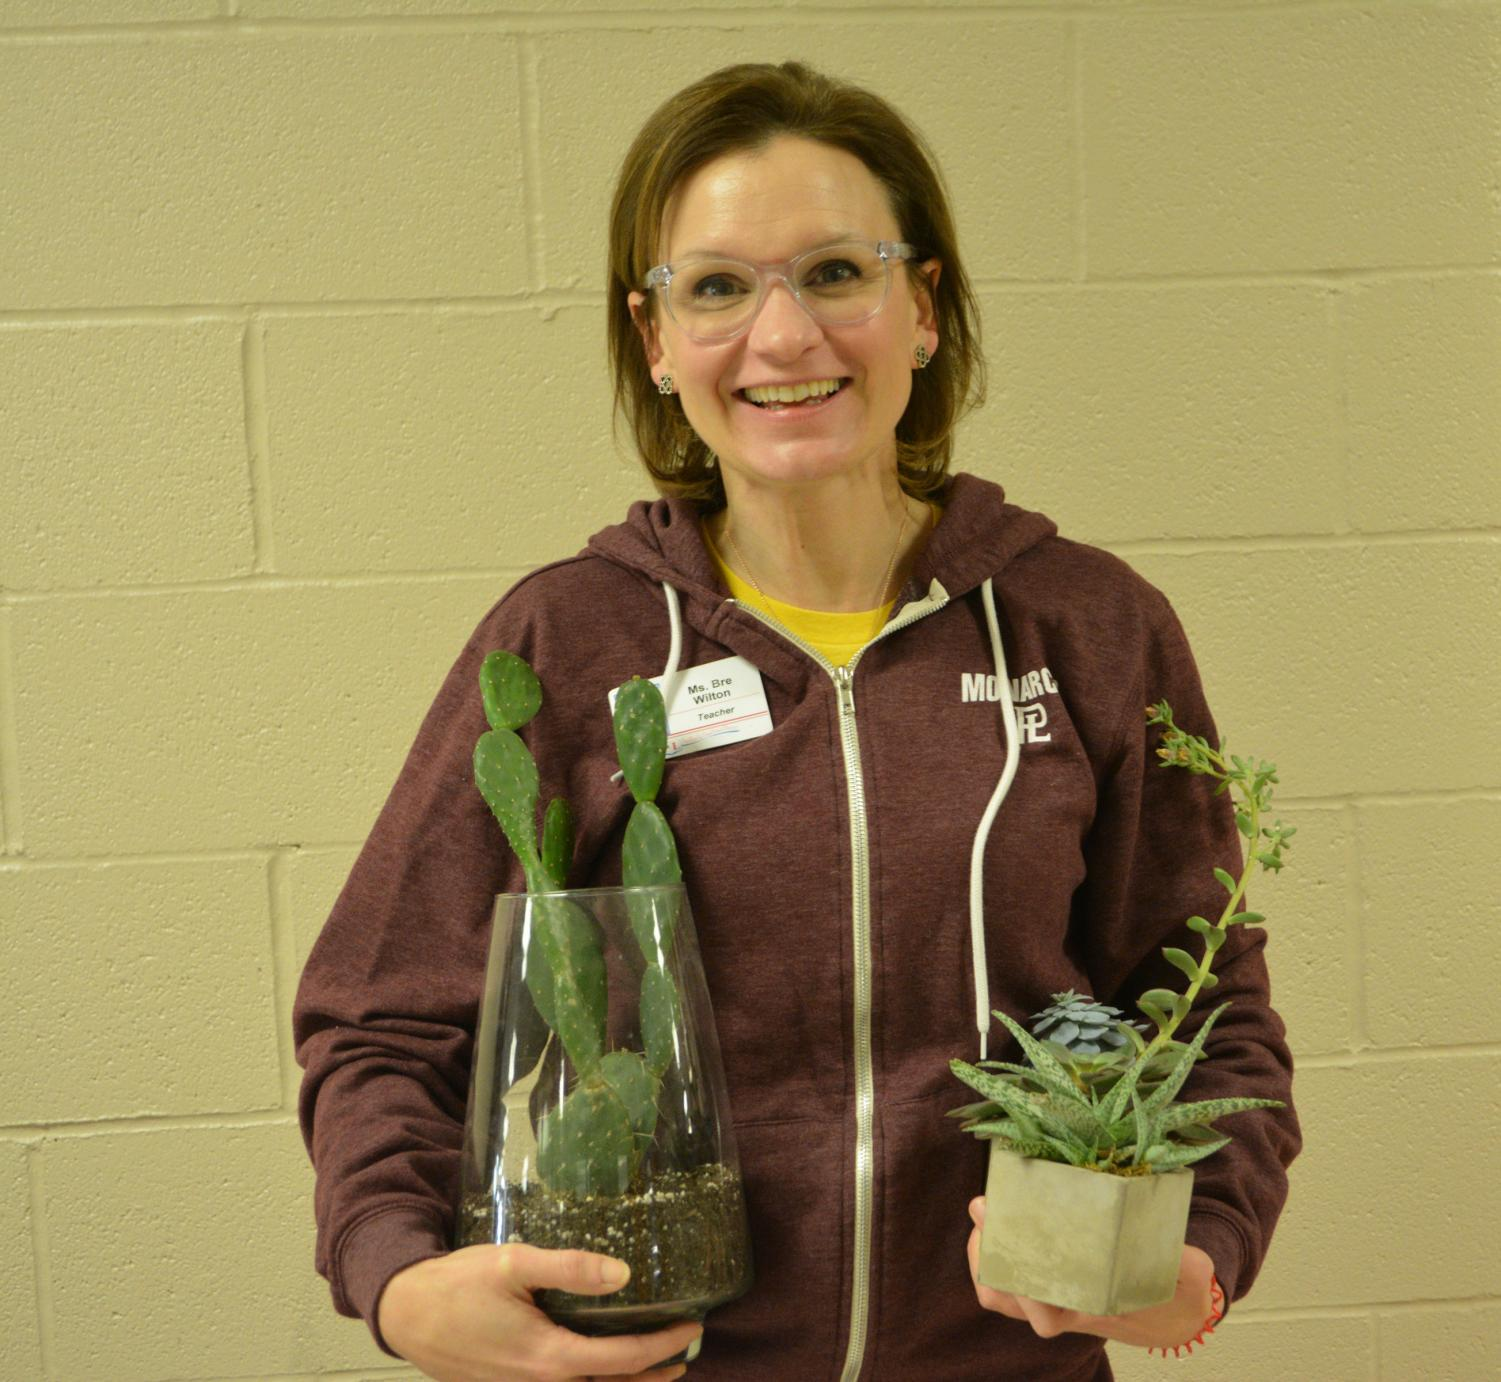 History teacher Mrs. Wilton poses with her two favorite plants.